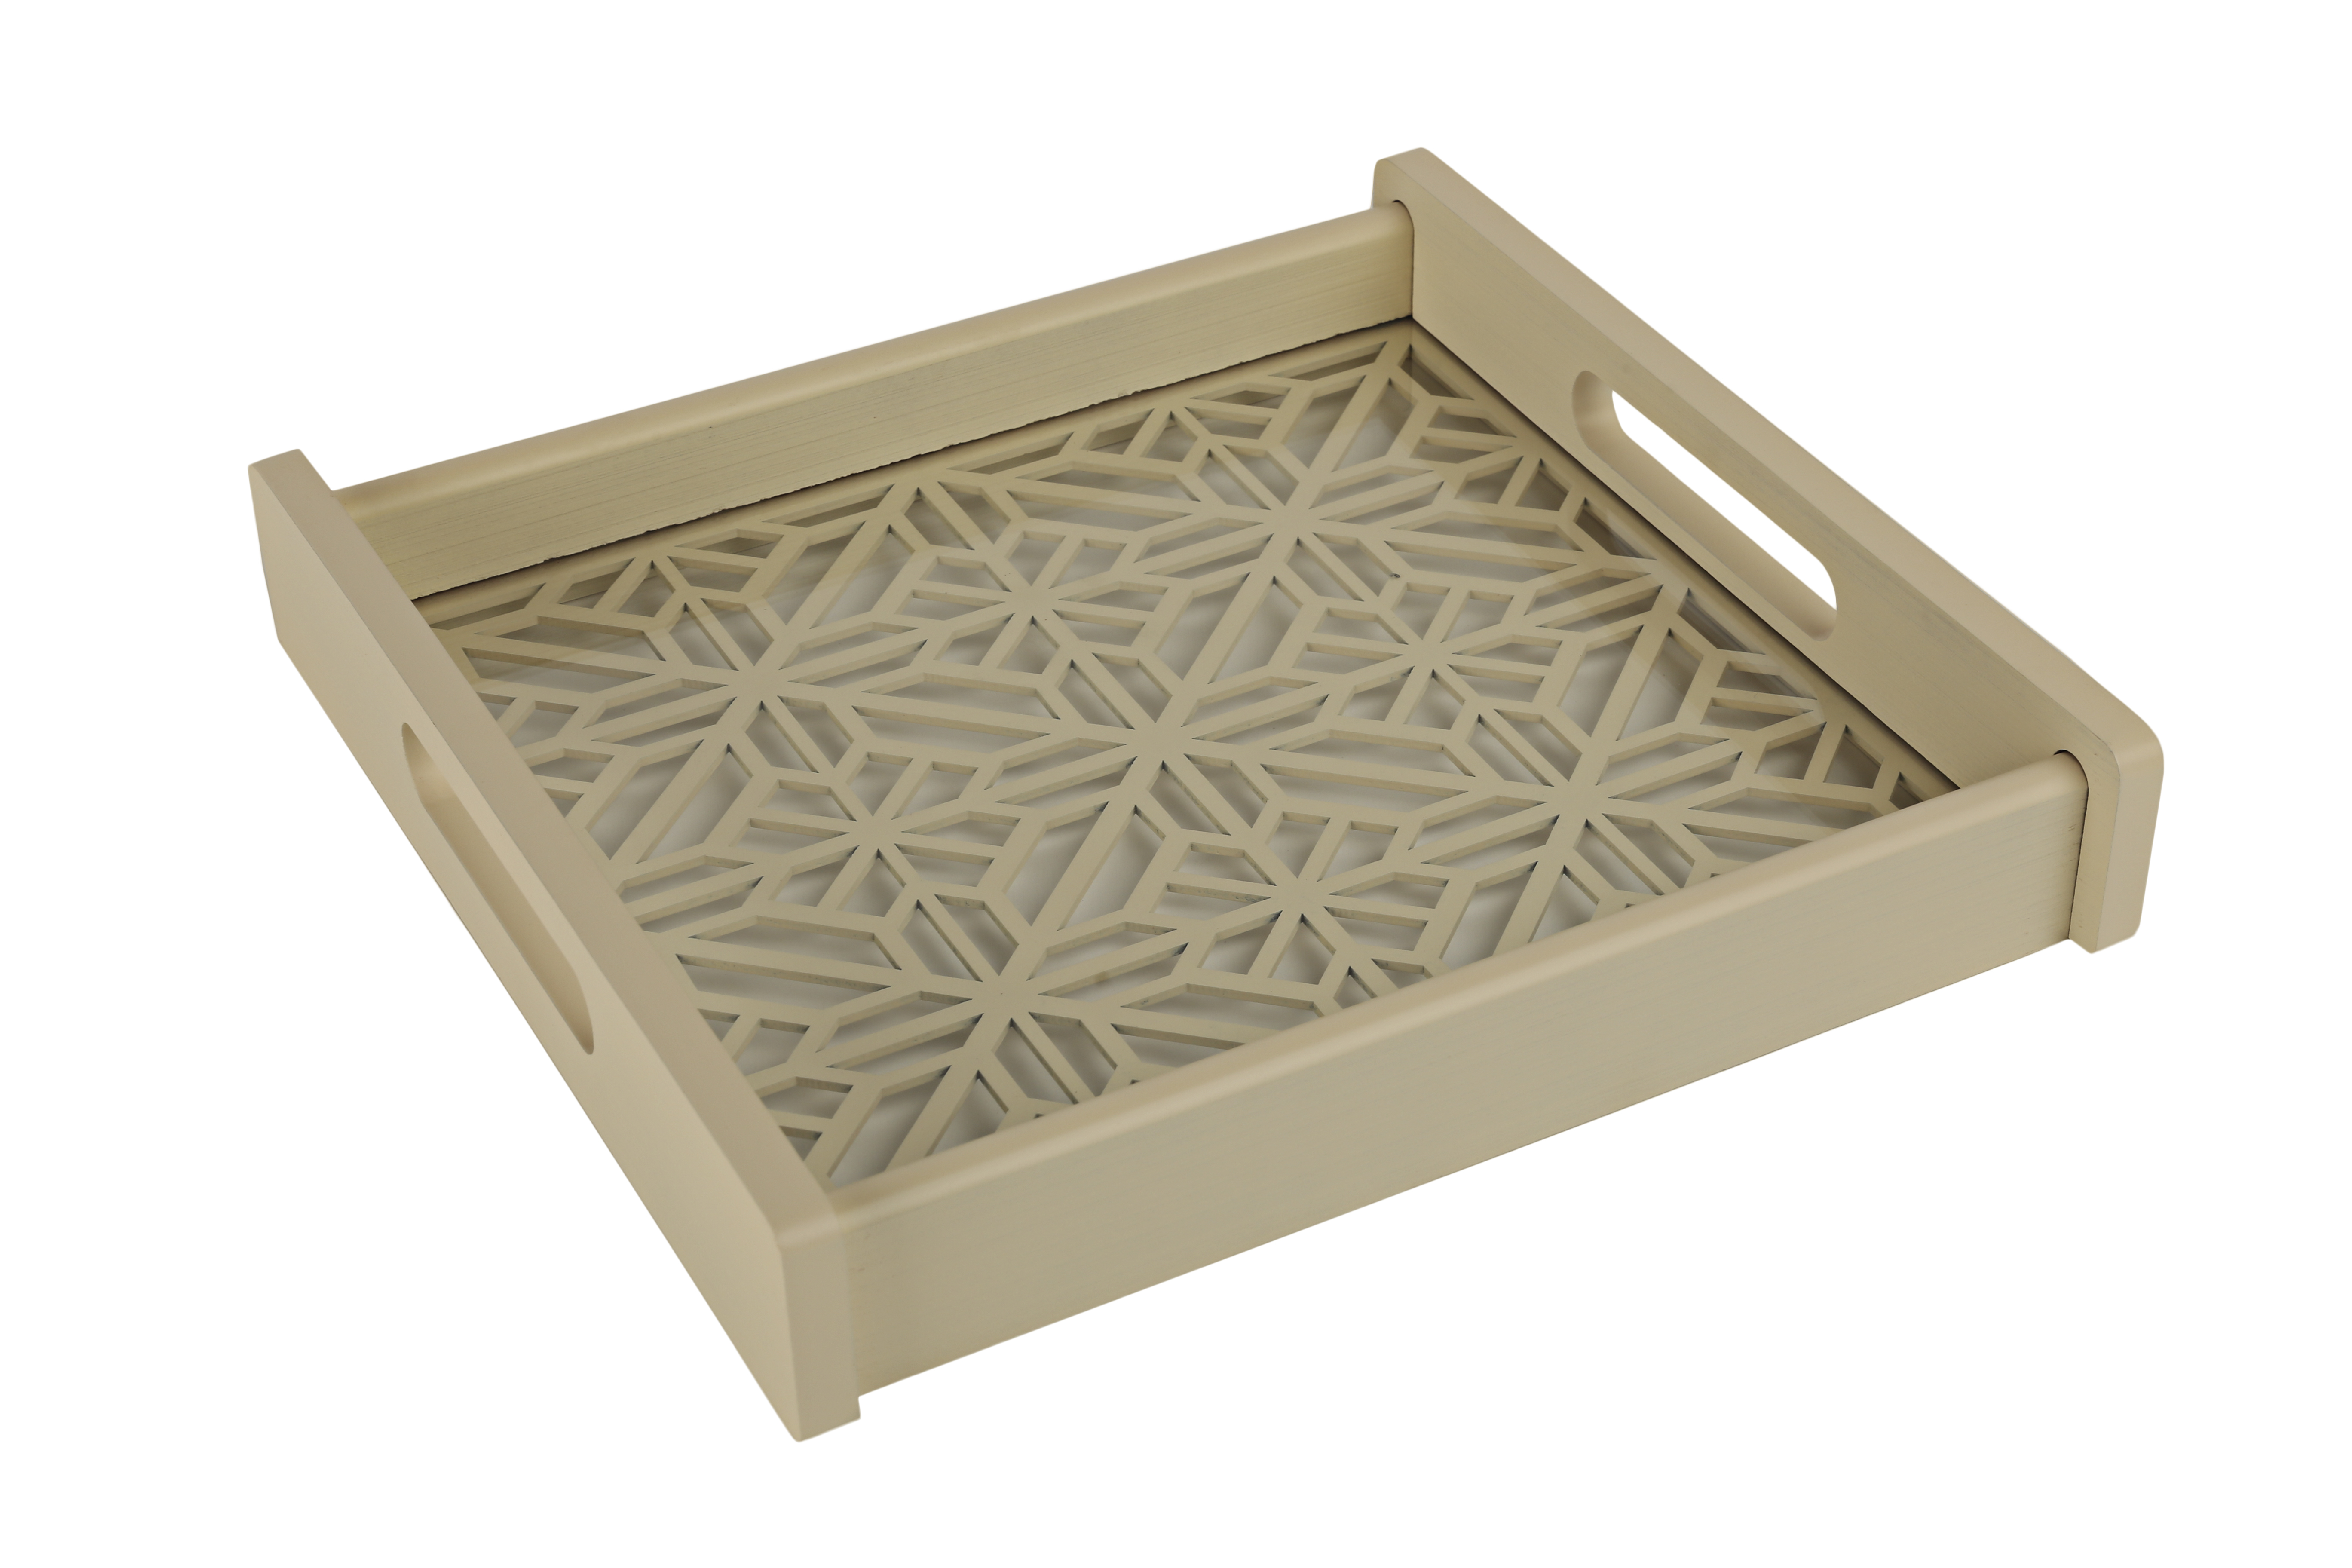 Cut Work Cut Tray Timber Wood Trays in Offwhite Colour by Living Essence